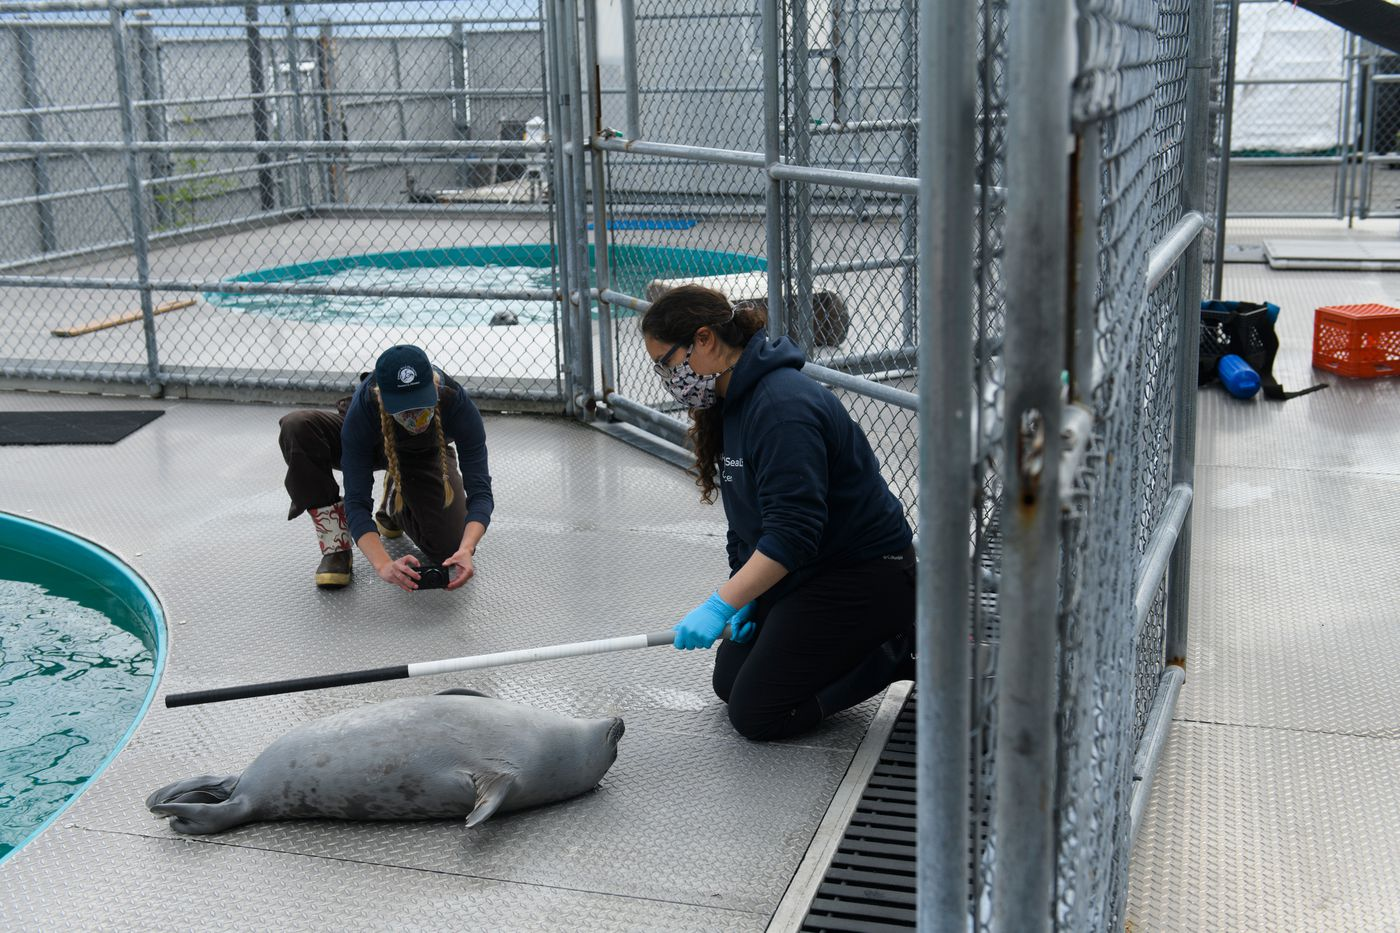 Research technician Madeline Meranda photographs a ringed seal while mammalogist Evelyn Lentz holds a reference pole on July 6, 2020 at the Alaska SeaLife Center. The seal is part of a University of California Santa Cruz-affiliated project to gather baseline biology and physiology data on ice seals. Activities pictured authorized by NMFS Scientific Research Permit #18902. (Marc Lester / ADN)